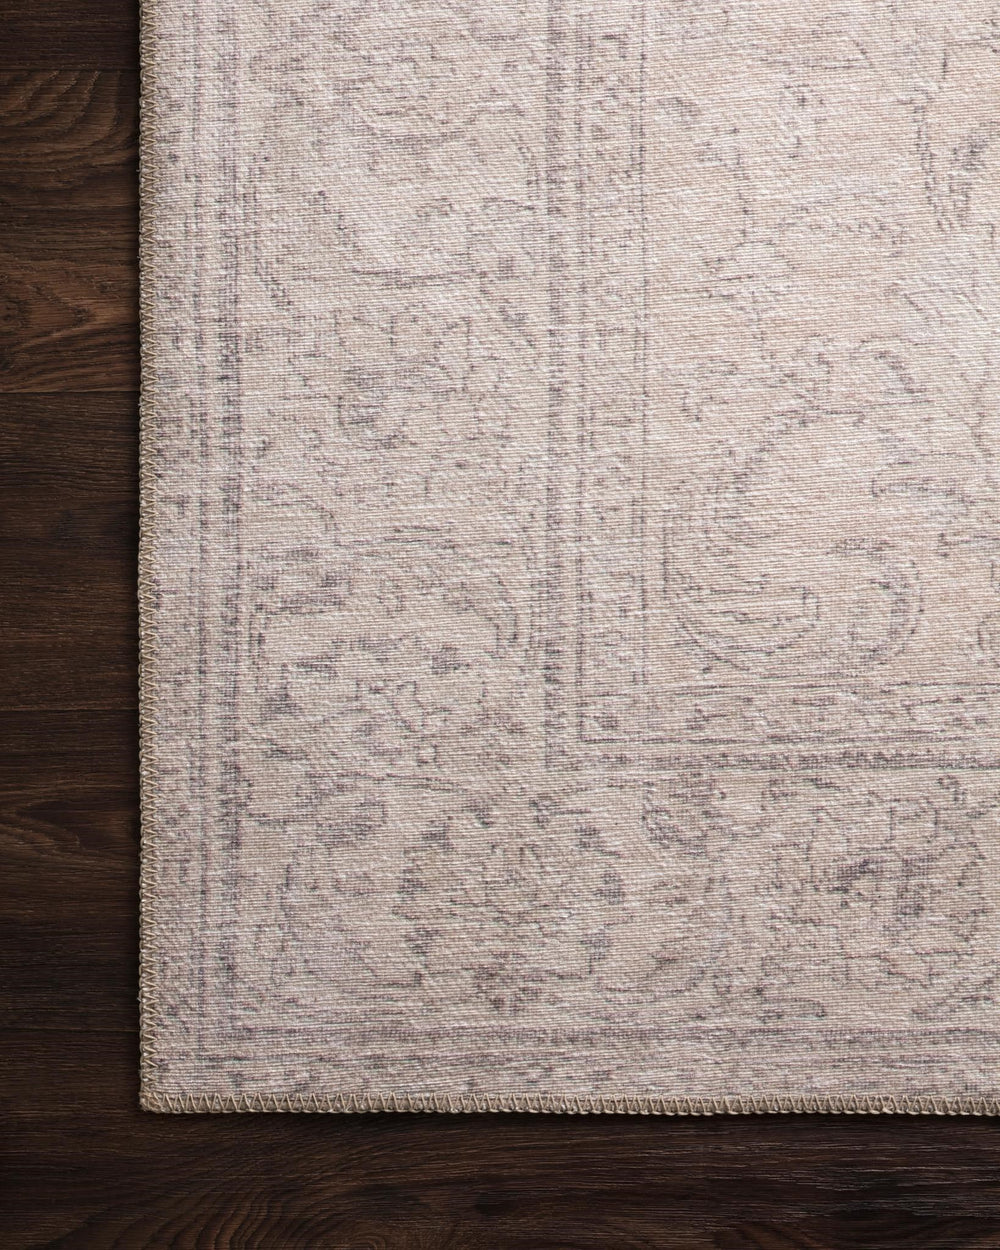 Timeless and classic, the Loren Collection offers vintage hand-knotted looks at an affordable price. Created in Turkey using the most advanced rug-making technology, these printed designs provide a textured effect by portraying every single individual knot on a soft polyester base.  Power Loomed 100% Polyester LQ-12 Sand